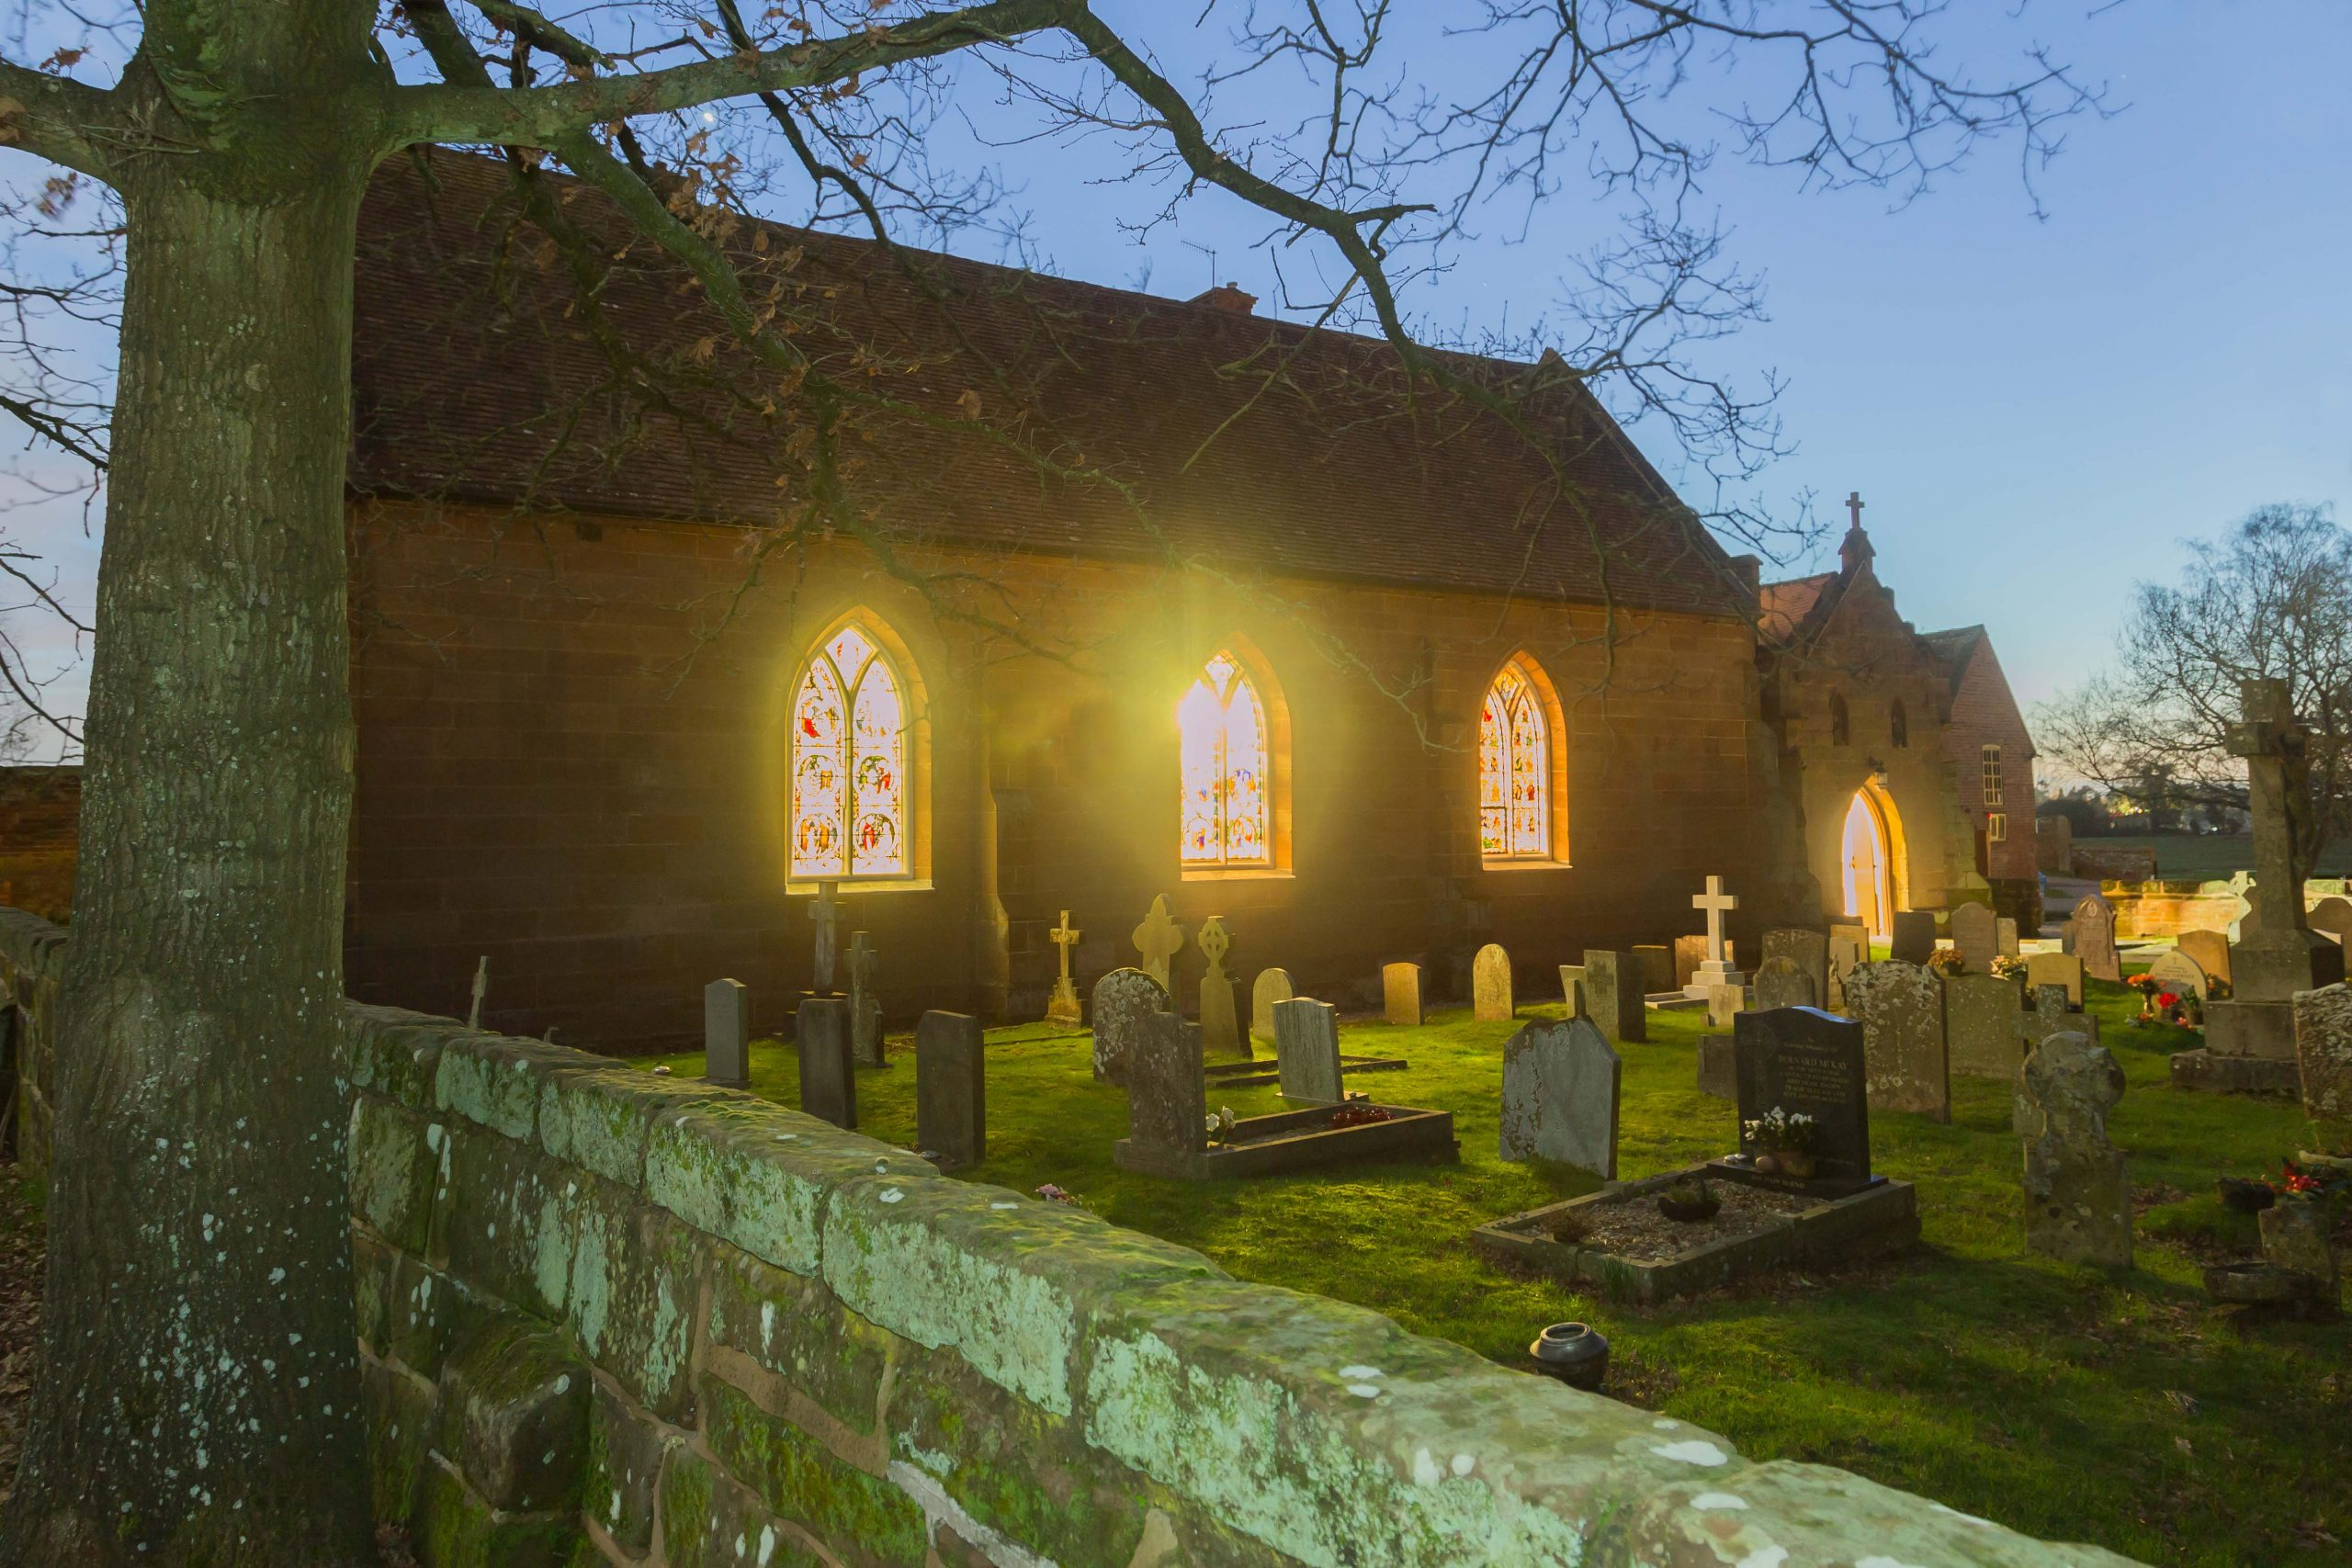 St Mary's Church in the winter evening light